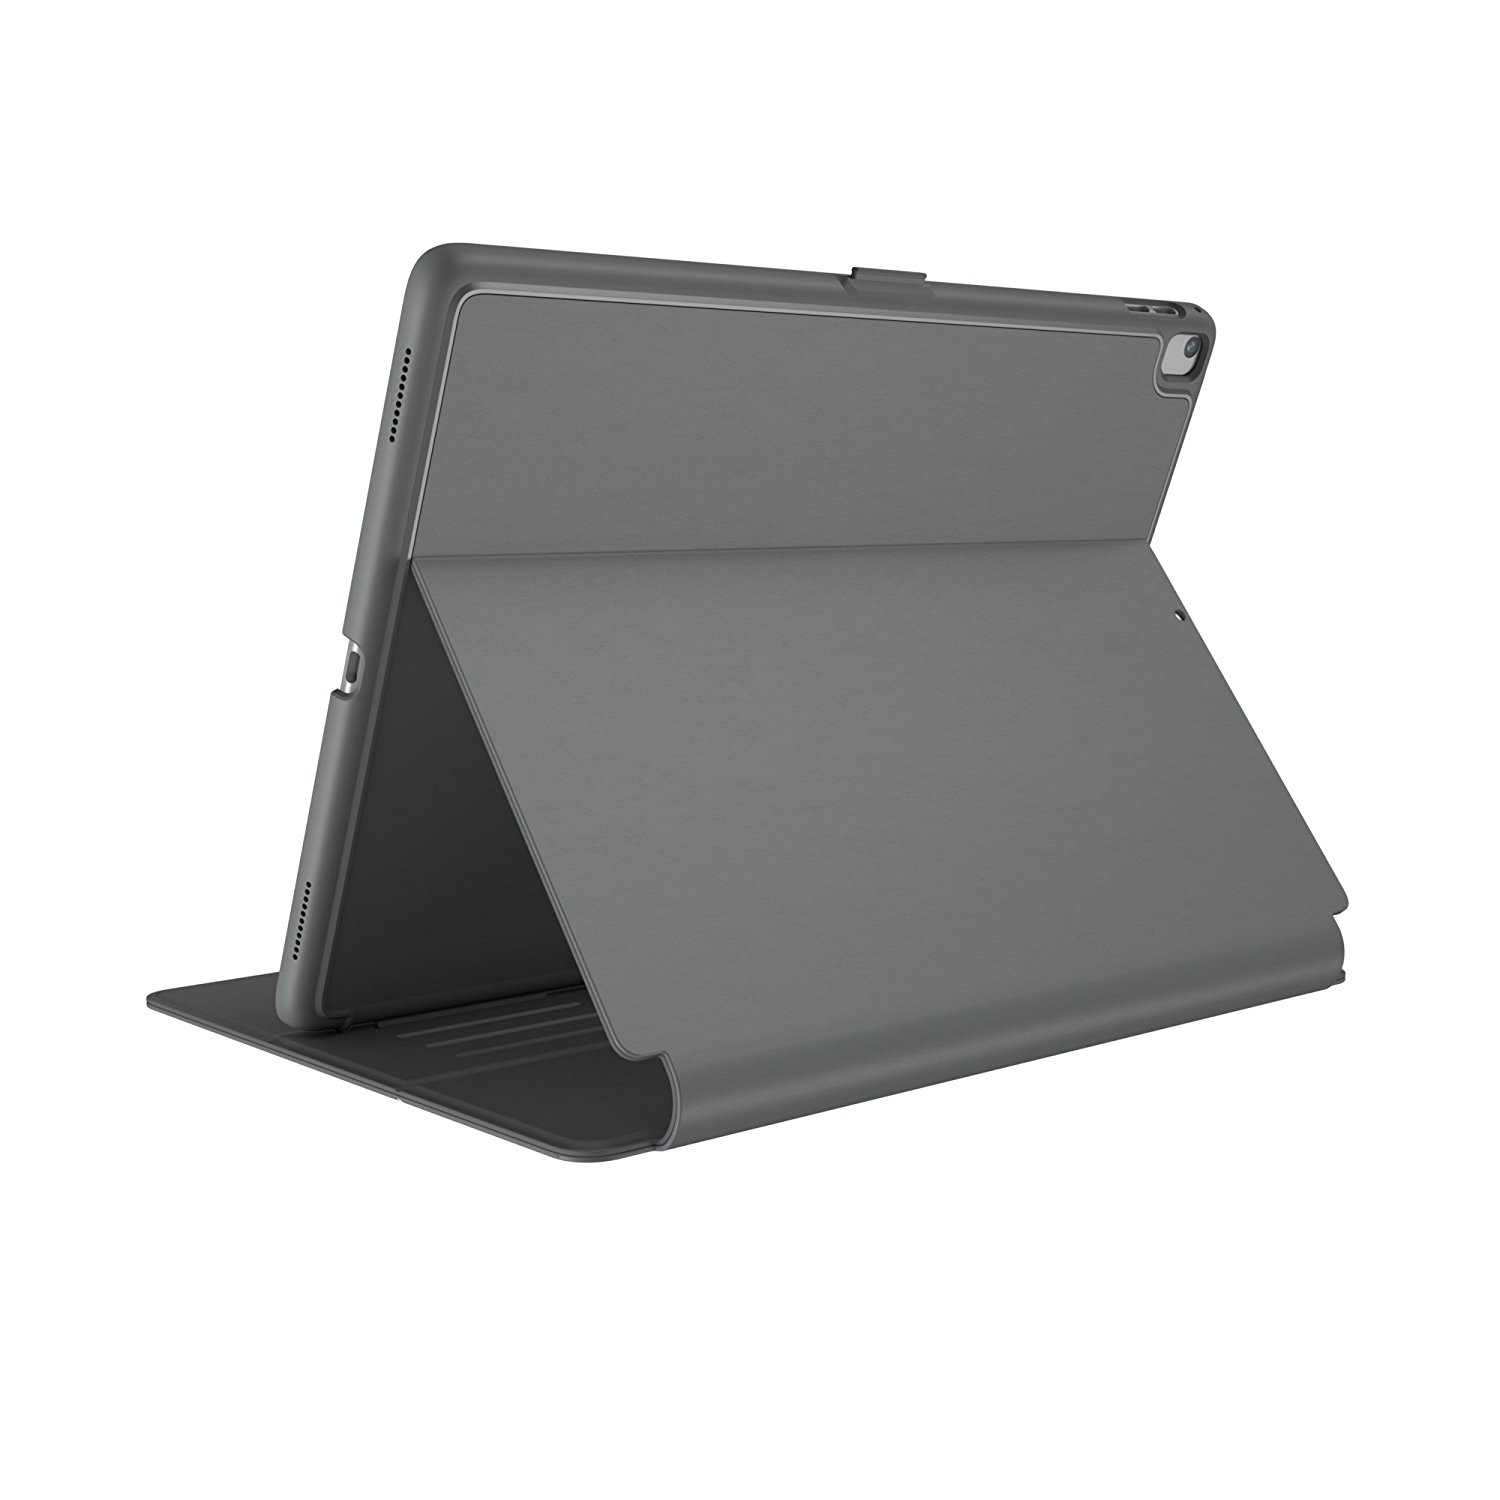 official photos 8a7f1 f170f Speck - iPad Pro 10.5-Inch Balance Folio w/Magnet - Stormy Grey/Charcoal  Grey